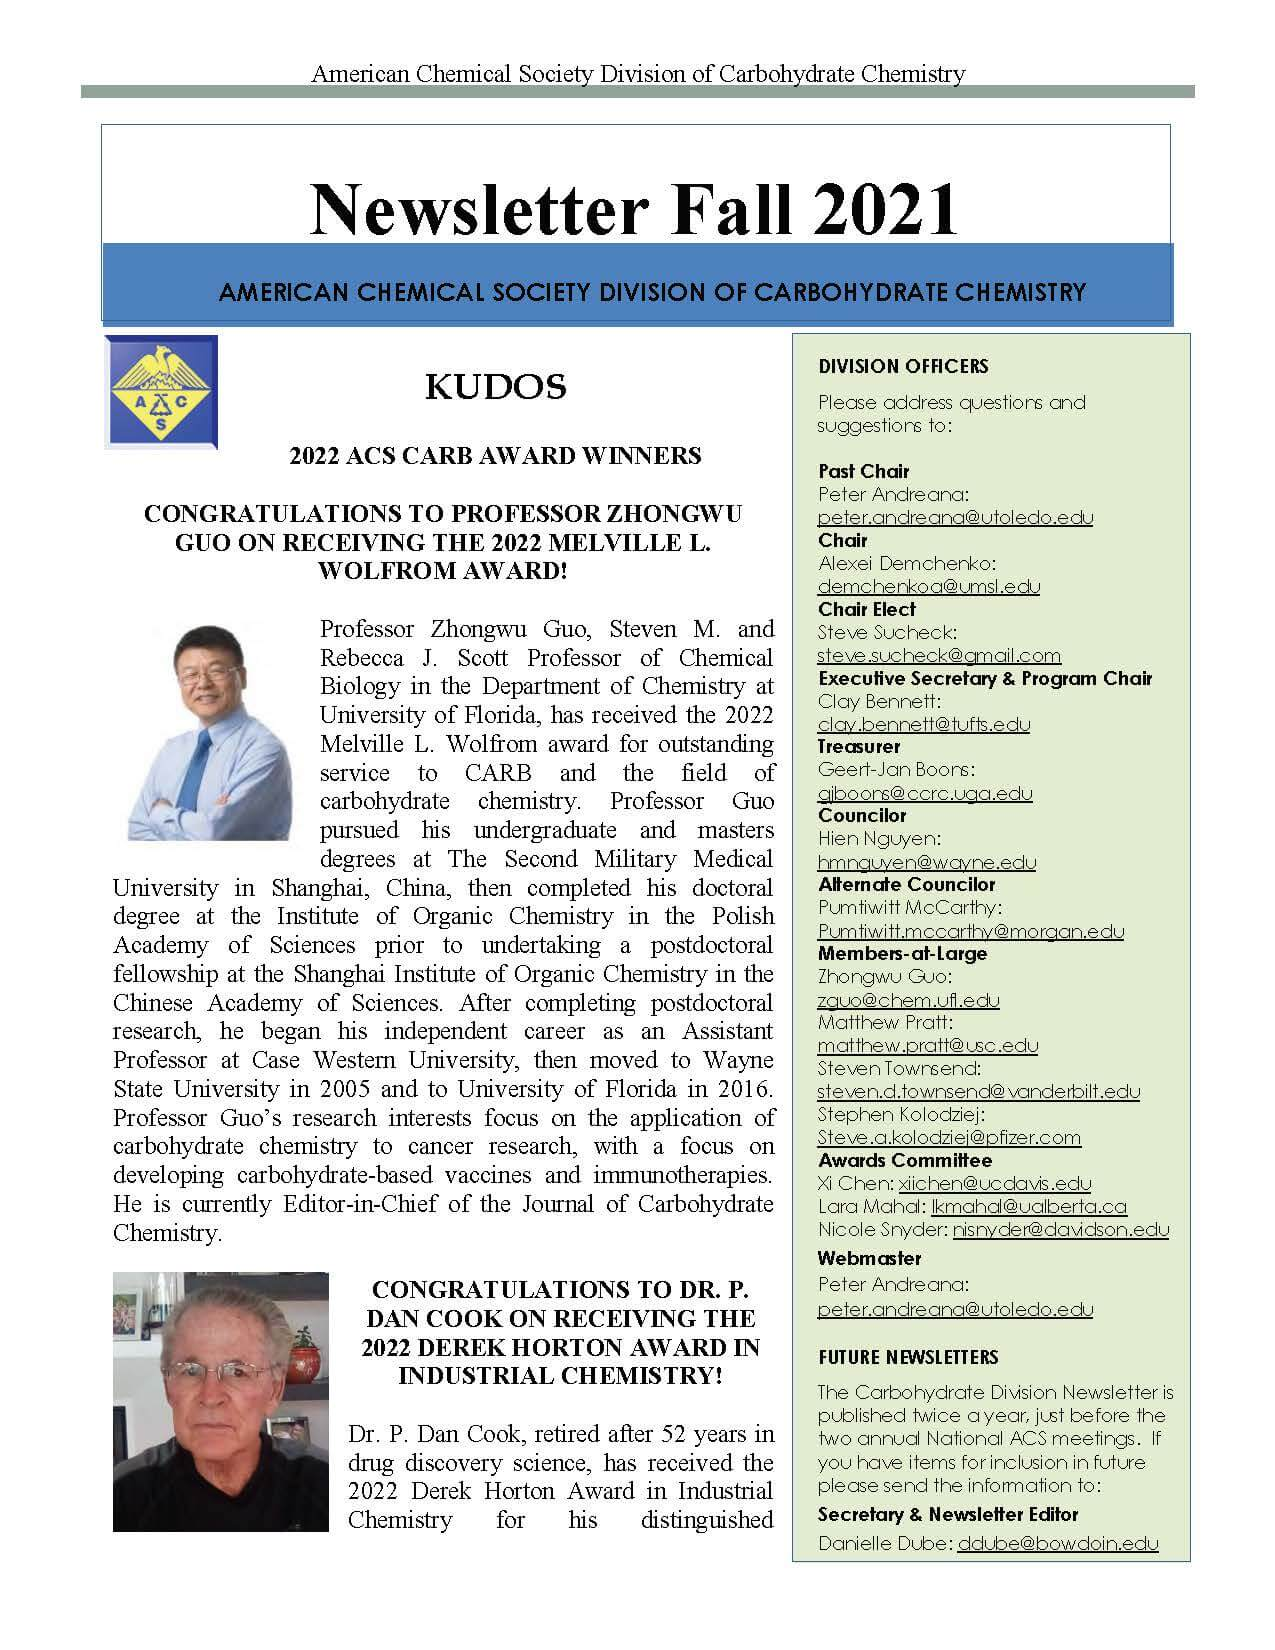 CARB Newsletter Fall 2021 FINAL (1)_Page_01 (1)